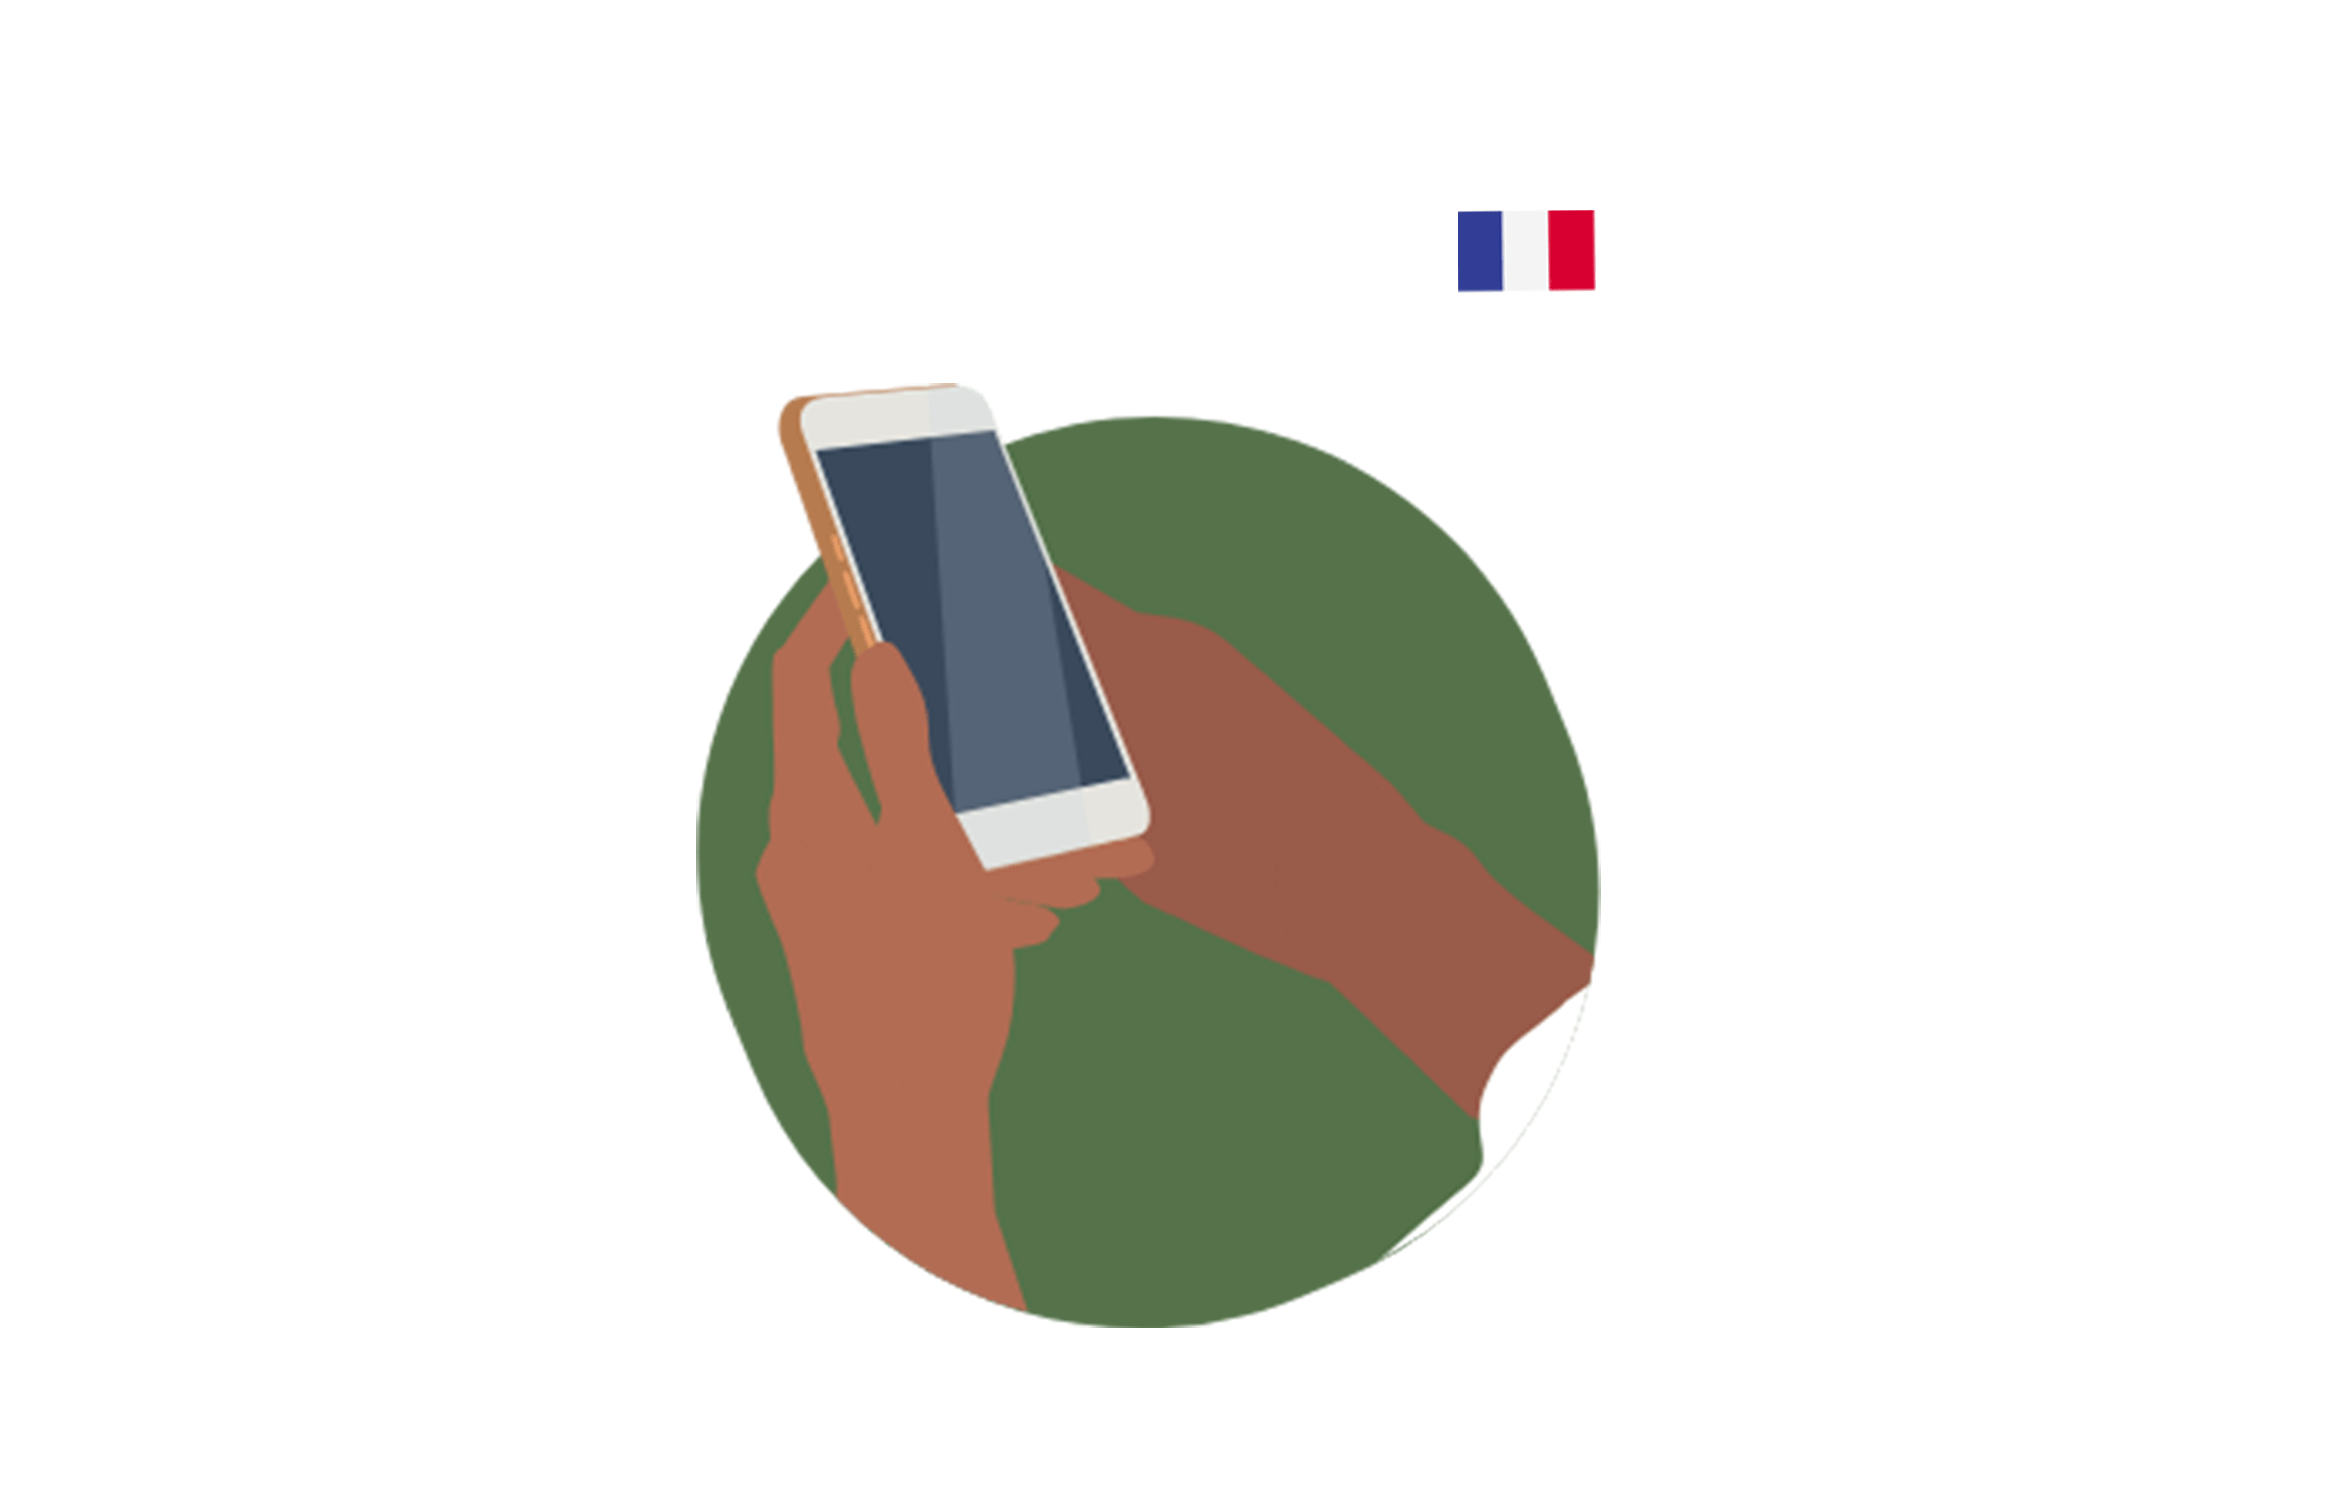 illustration of a mobile phone being used